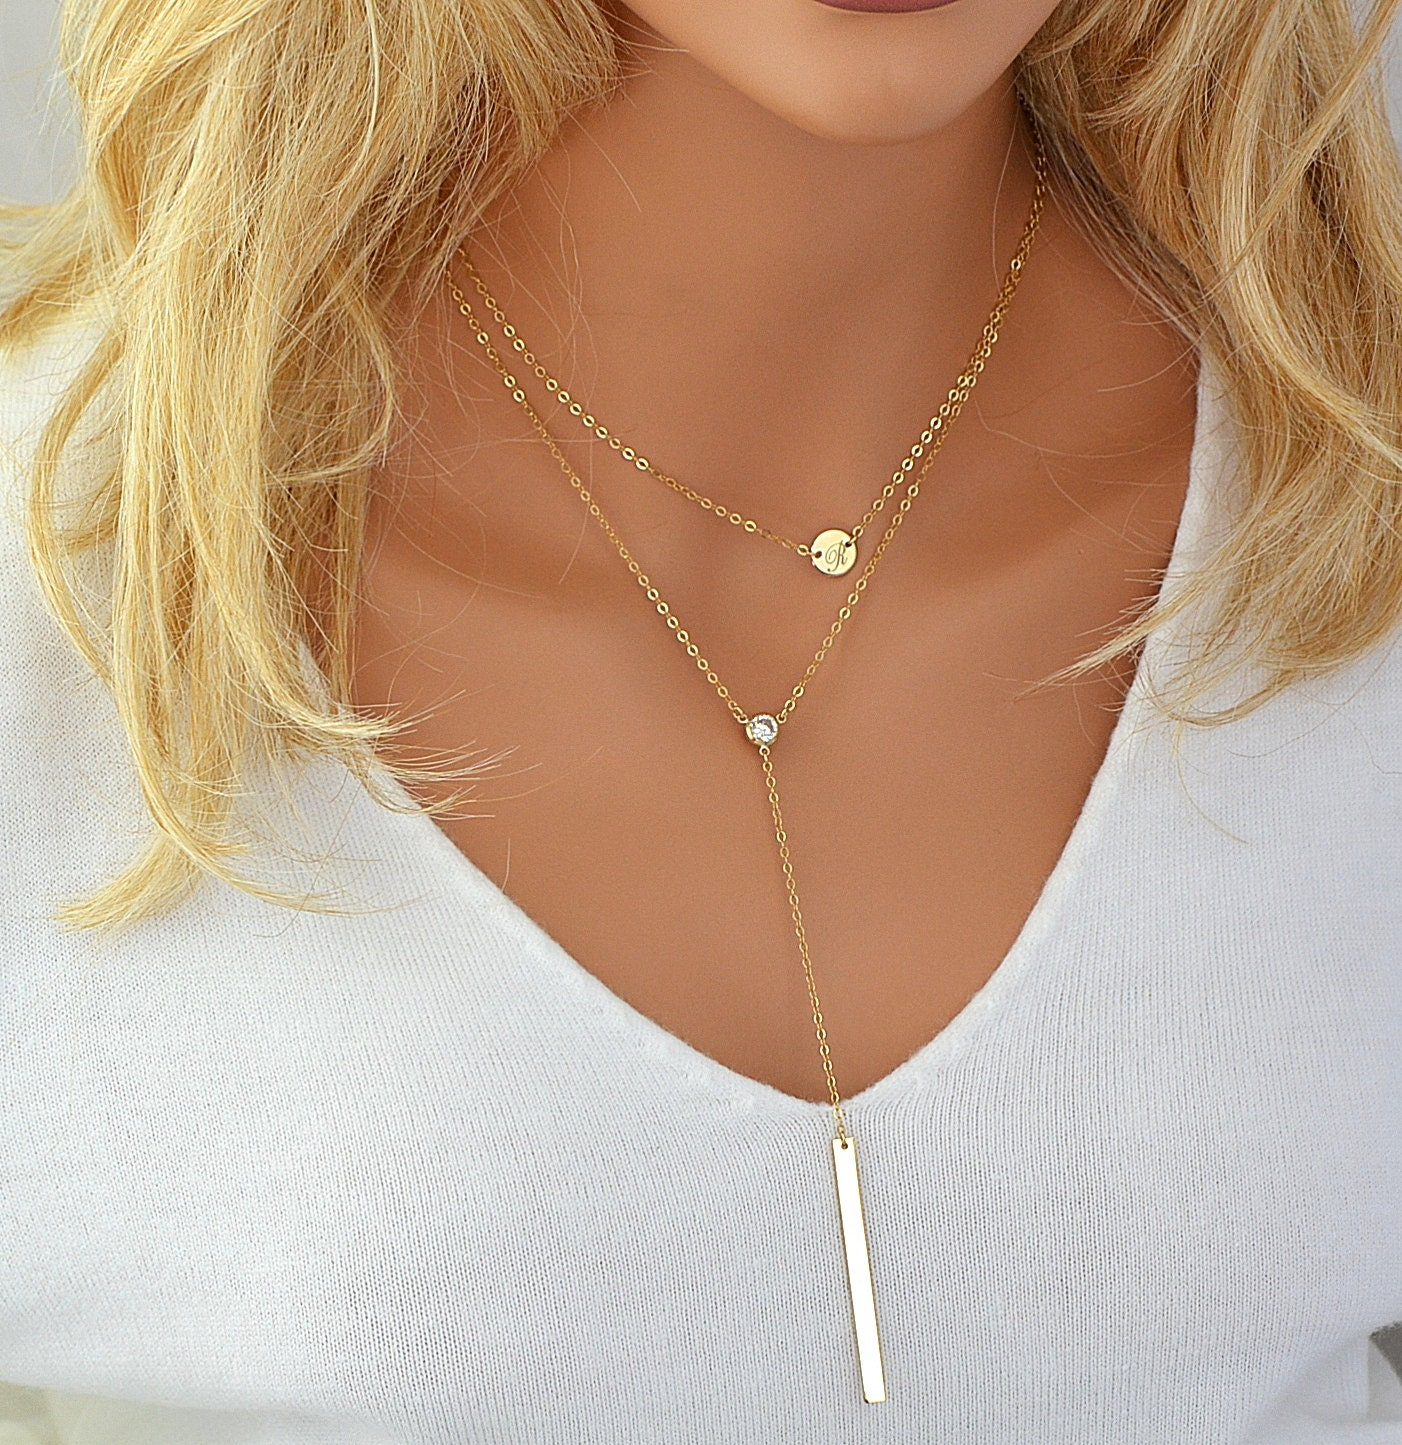 layered long necklace initial necklace long gold necklace. Black Bedroom Furniture Sets. Home Design Ideas